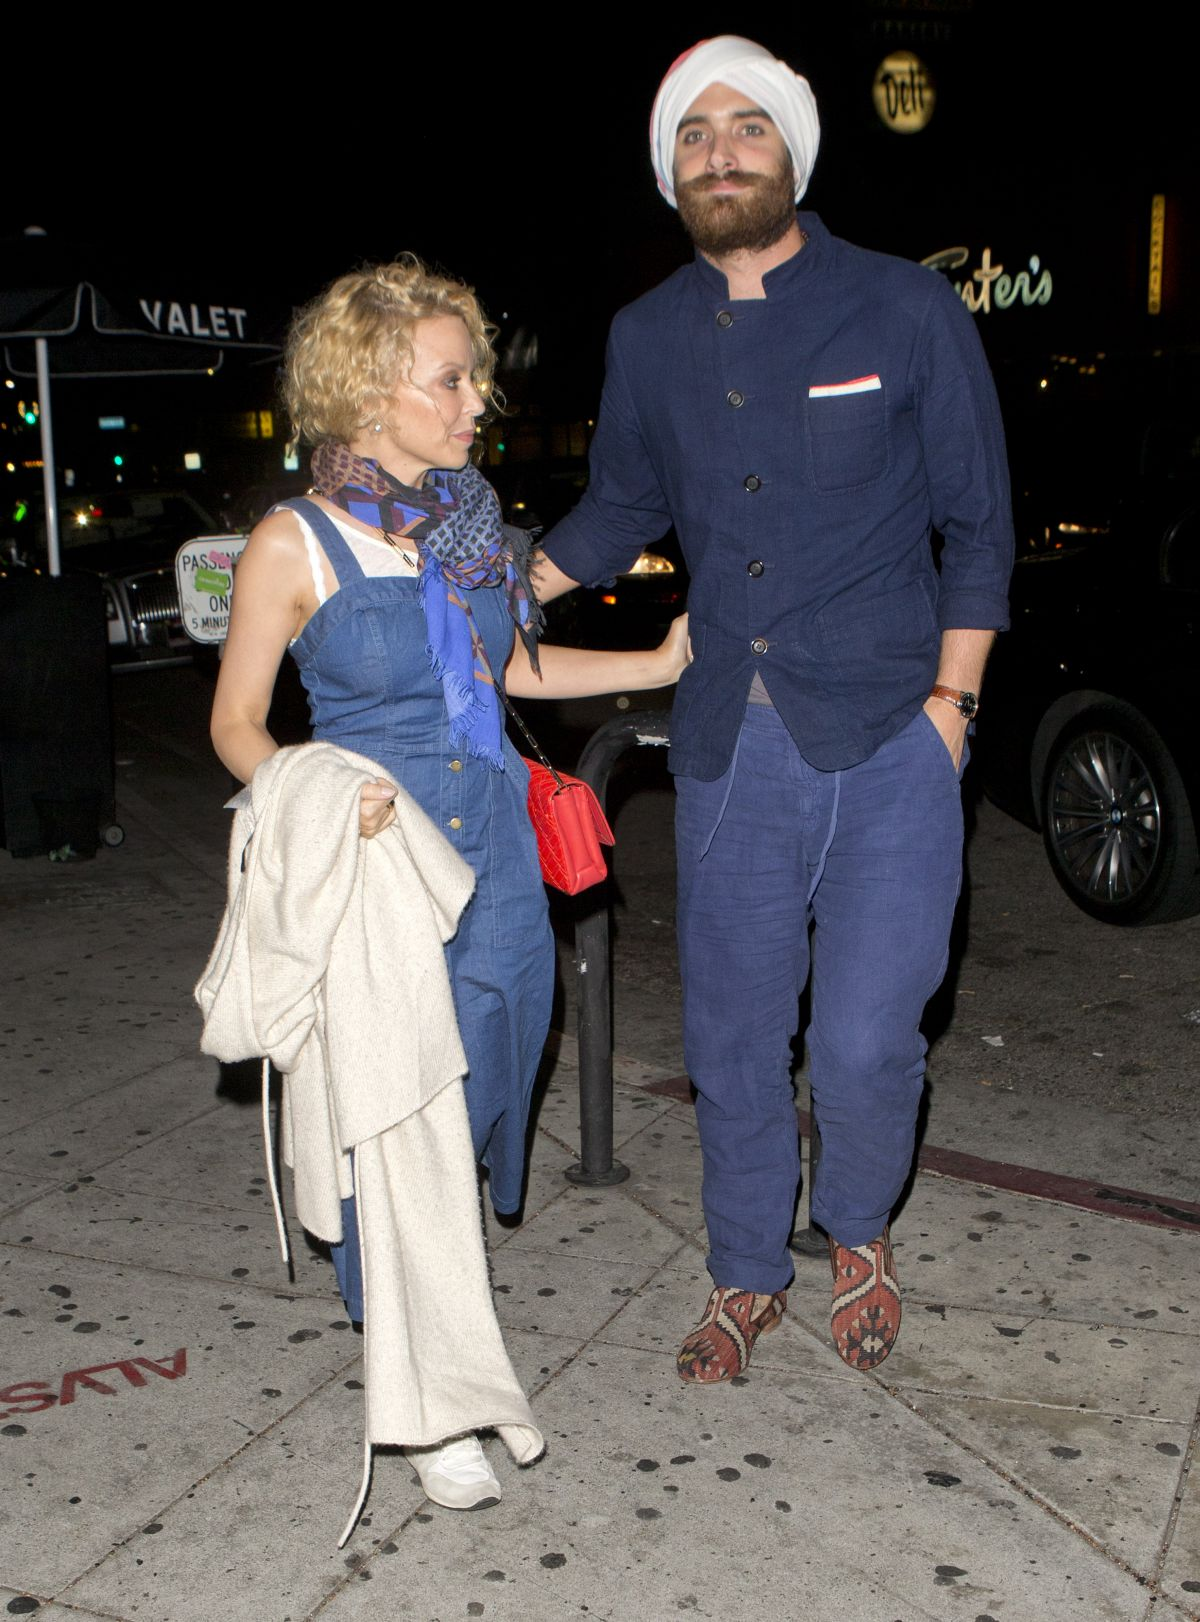 KYLIE MINOGUE Arrives At Lady Gagas 30th Birthday Party In Los Angeles 03 26